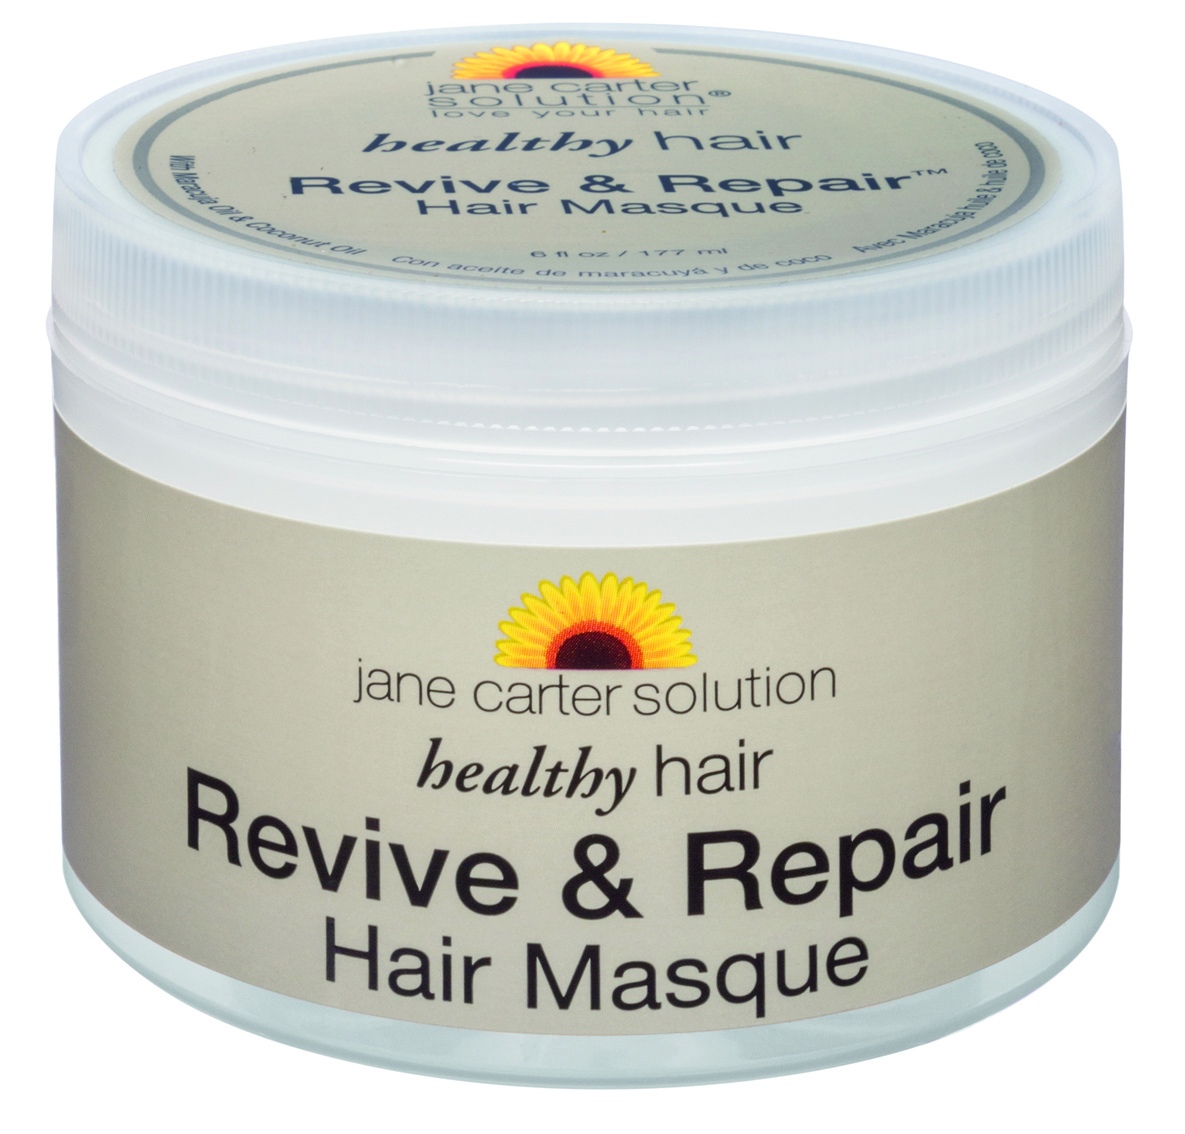 Jane Carter Solution  Revive & Repair  Hair Masque  restores natural oils back into dry hair and can be used as a deep conditioner with or without heat. Works on all hair types, including color-treated and relaxed hair.